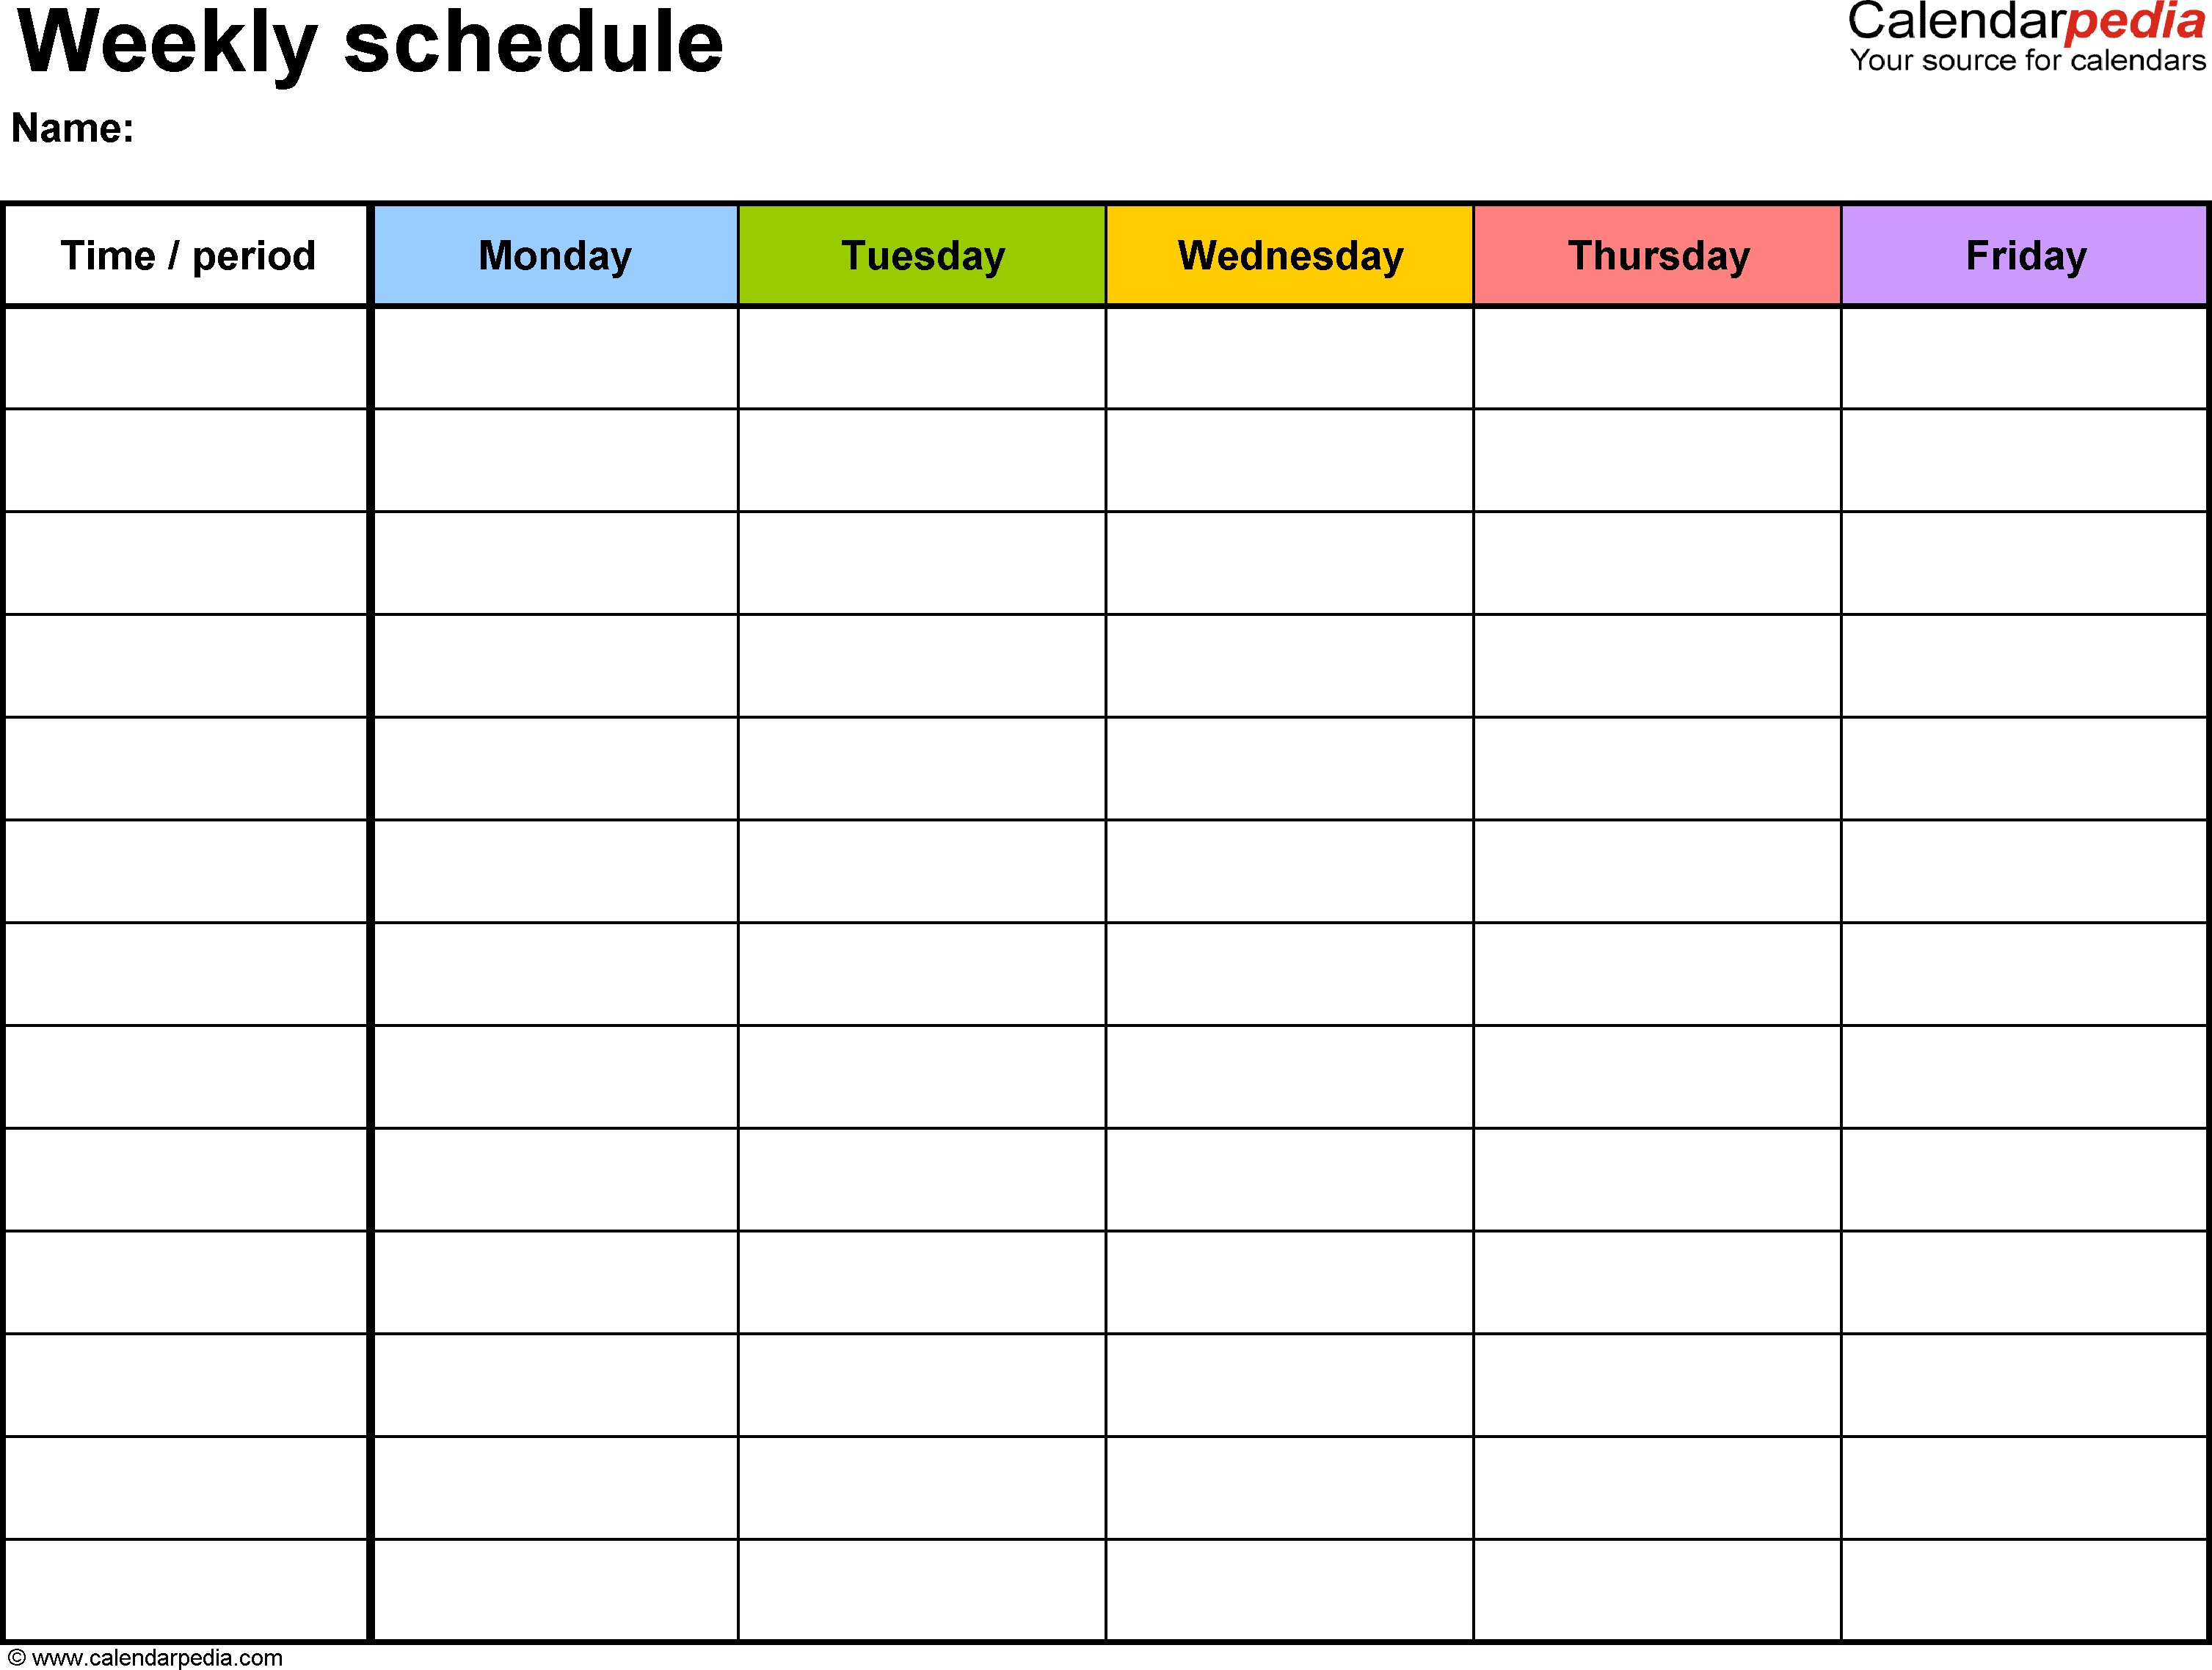 Free Weekly Schedule Templates For Excel - 18 Templates throughout Blank Weekly Schedule With Times